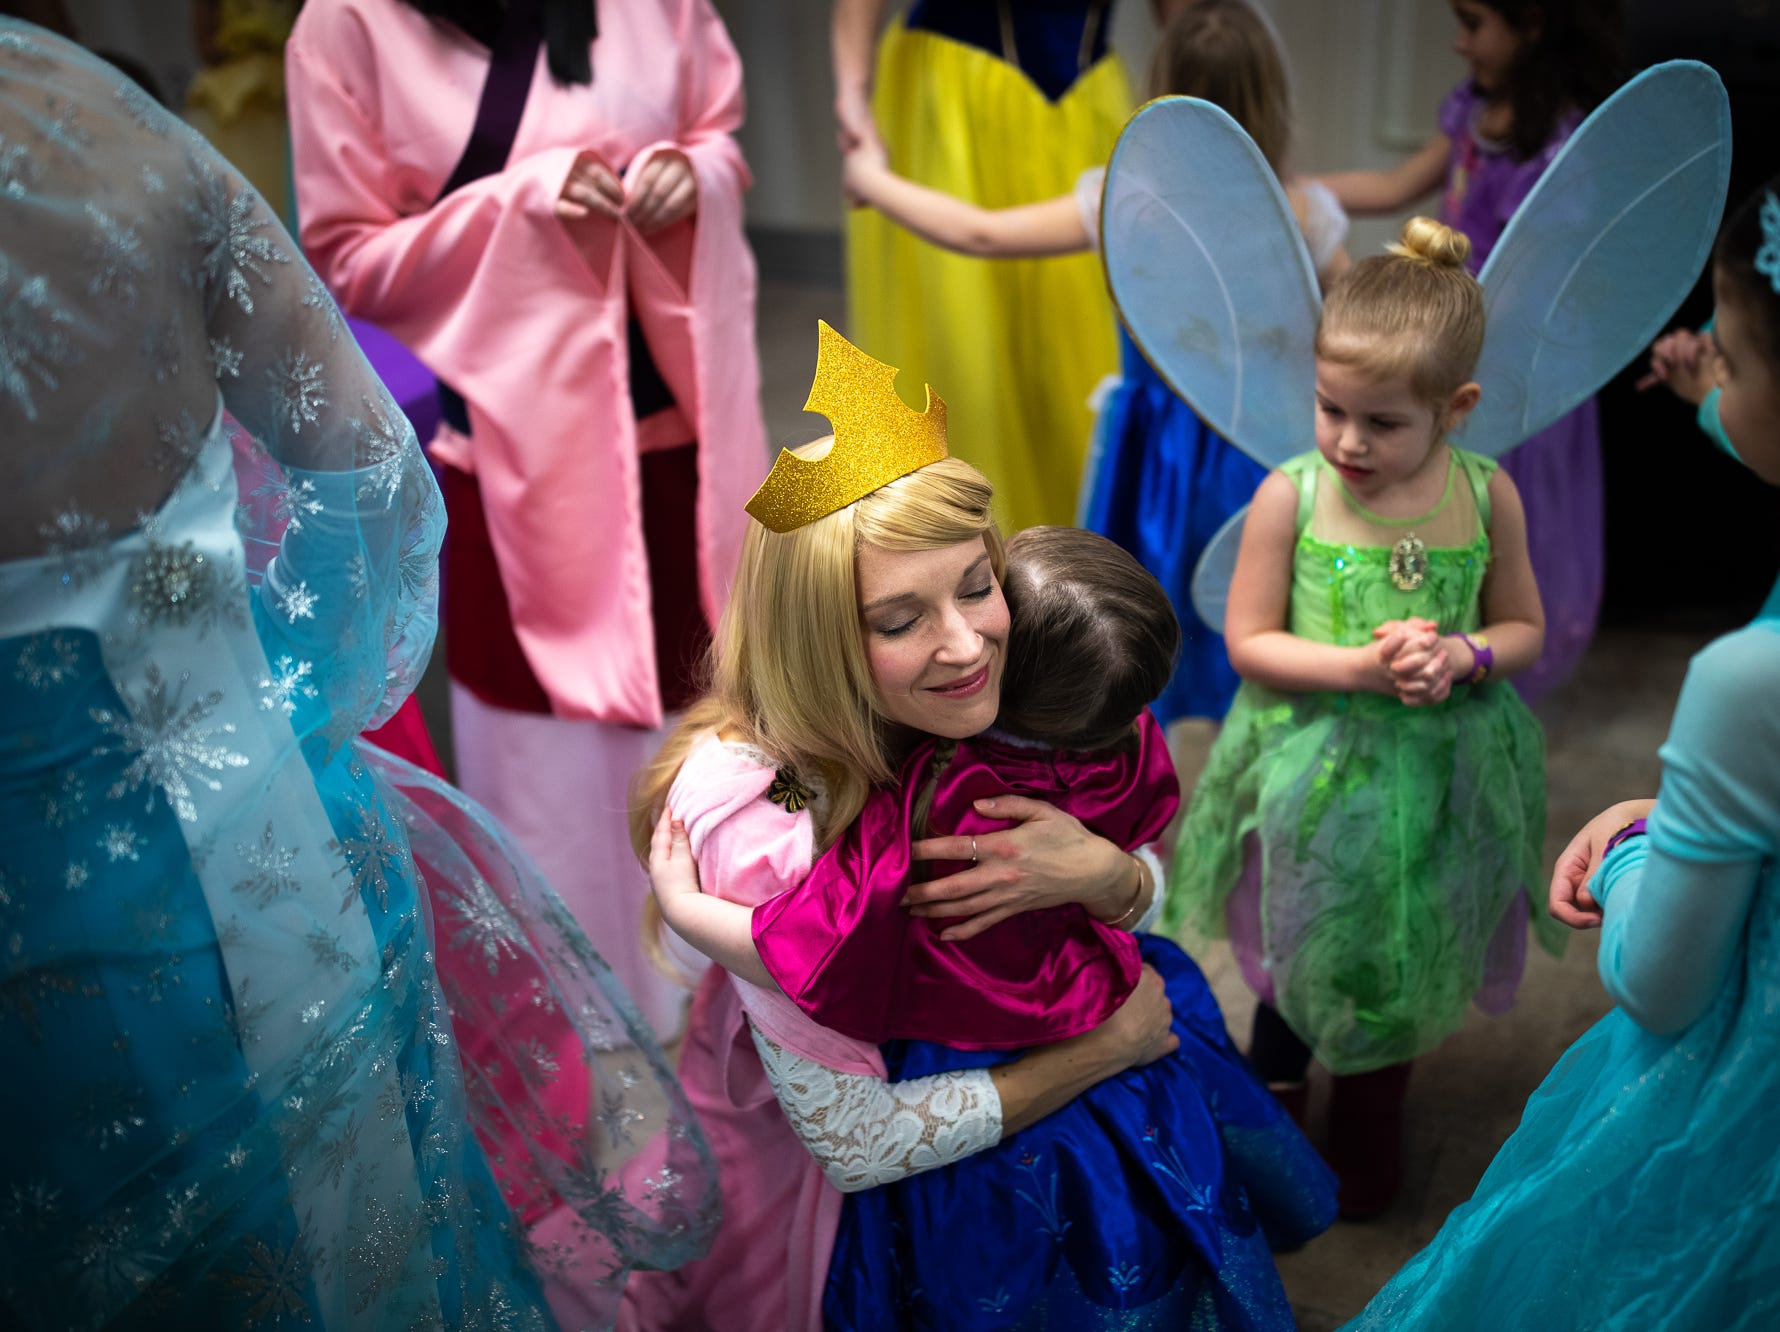 Princess Aurora, portrayed by Jill Rakowicz, embraces Cecilia Chesney, 2, during a princess teatime hosted by the Black Rose Rollers, Saturday, Feb. 9, 2019, at the Hanover YWCA.